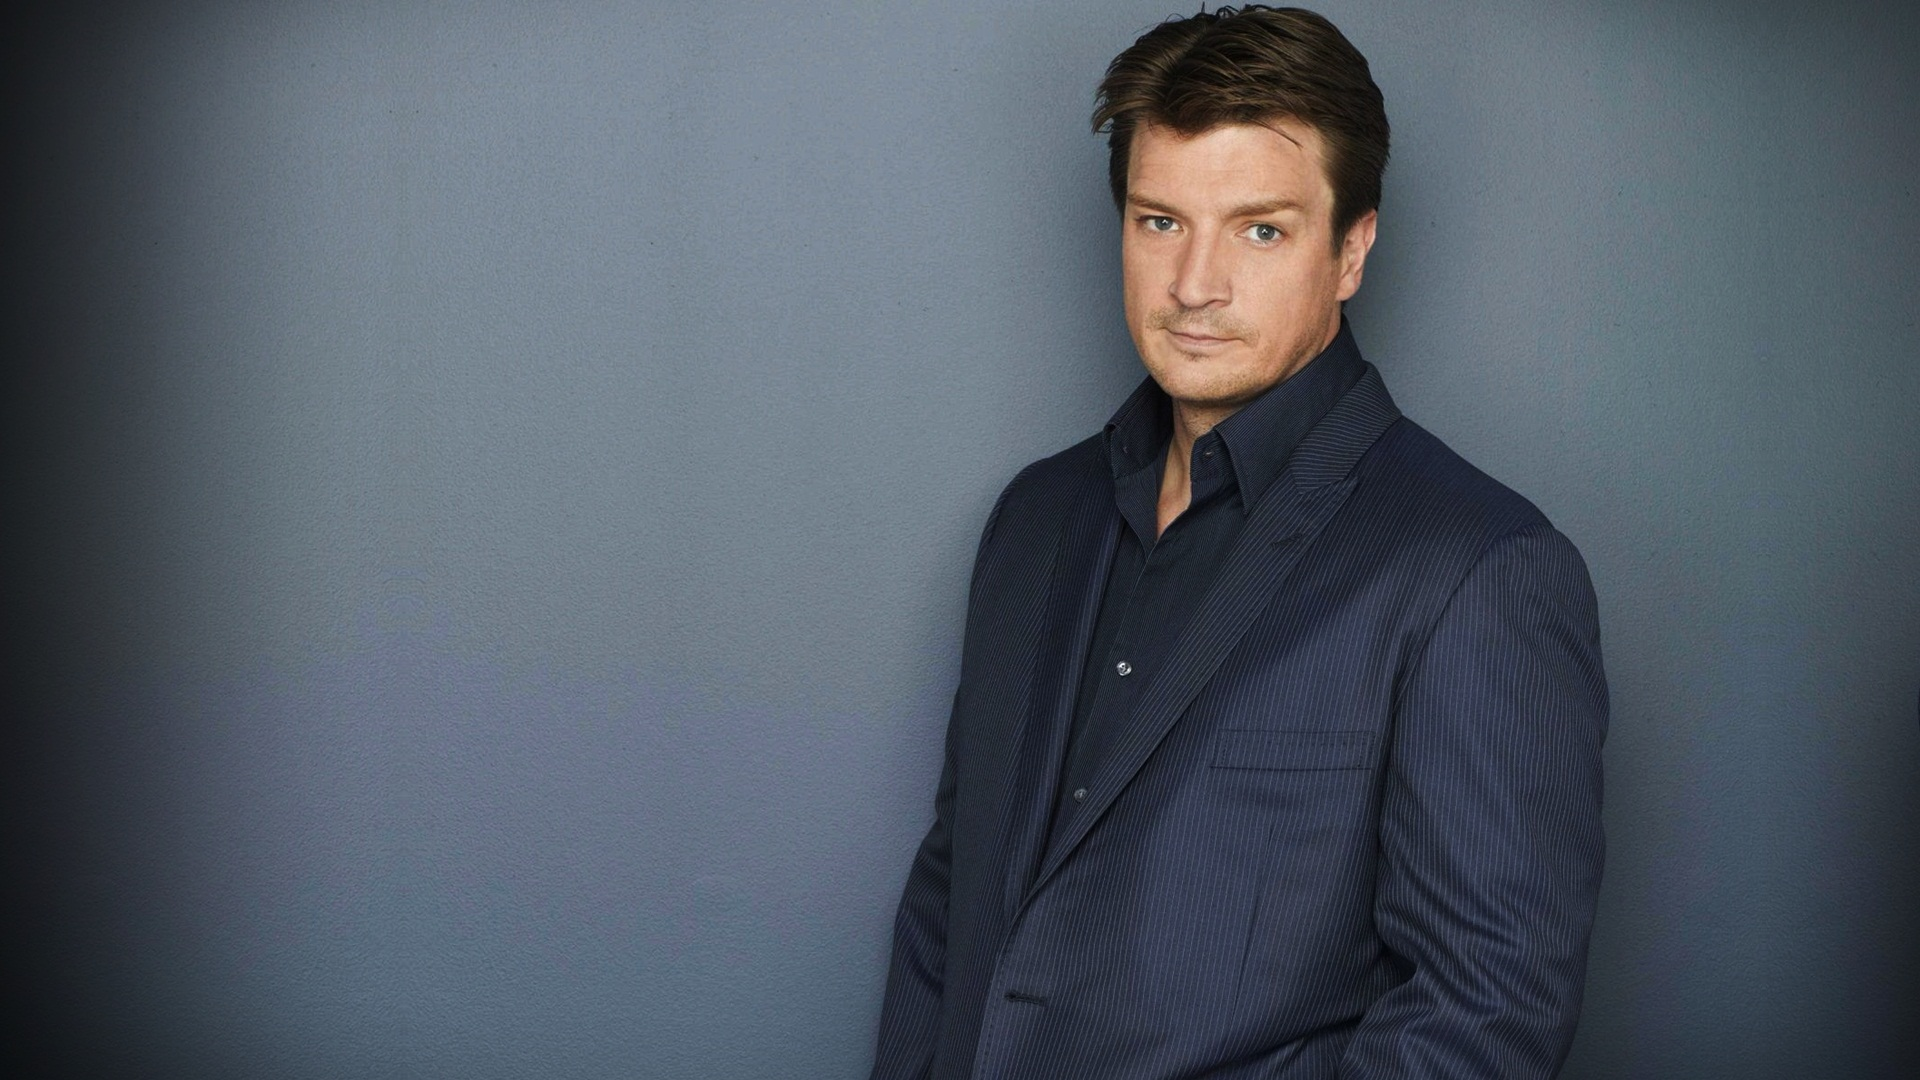 nathan fillion gif tumblrnathan fillion gif, nathan fillion twitter, nathan fillion gif nevermind, nathan fillion 2017, nathan fillion young, nathan fillion firefly, nathan fillion 2016, nathan fillion nevermind, nathan fillion castle, nathan fillion wonder man, nathan fillion cable, nathan fillion interview, nathan fillion booster gold, nathan fillion guardians of the galaxy cameo, nathan fillion gif tumblr, nathan fillion galaxy guardians, nathan fillion forum, nathan fillion quotes, nathan fillion new show, nathan fillion buck